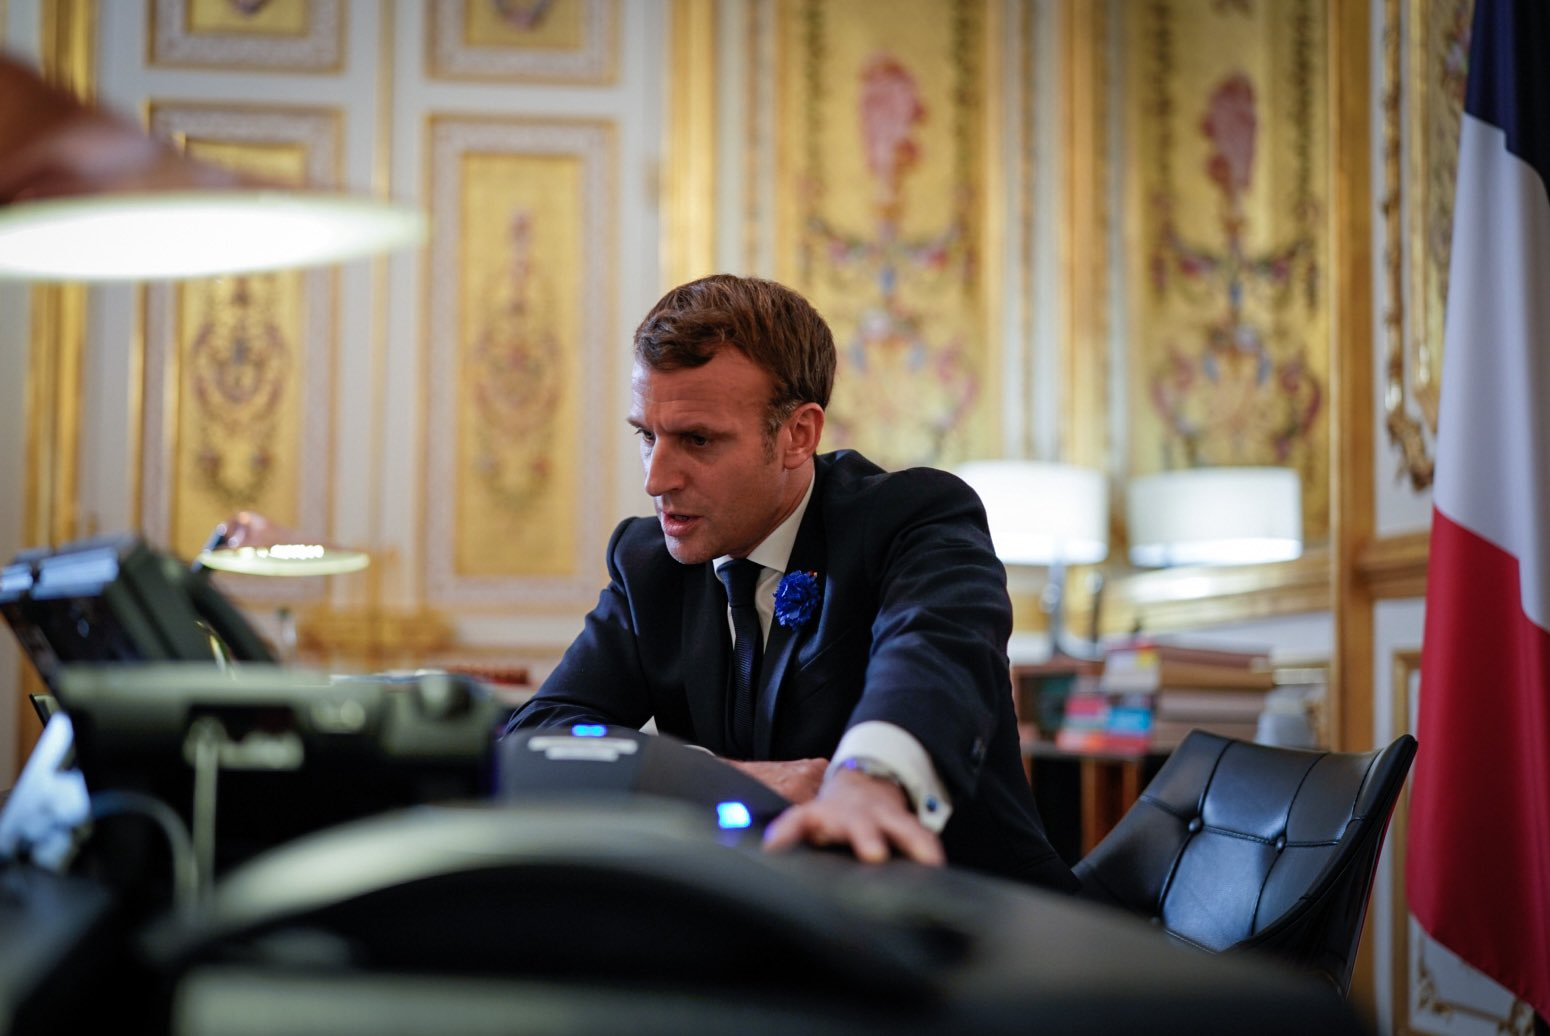 Emmanuel Macron On Twitter I Spoke To Joebiden To Congratulate Him On His Election We Ll Have A Lot To Do Together To Promote Shared Priorities Climate Global Health International Security